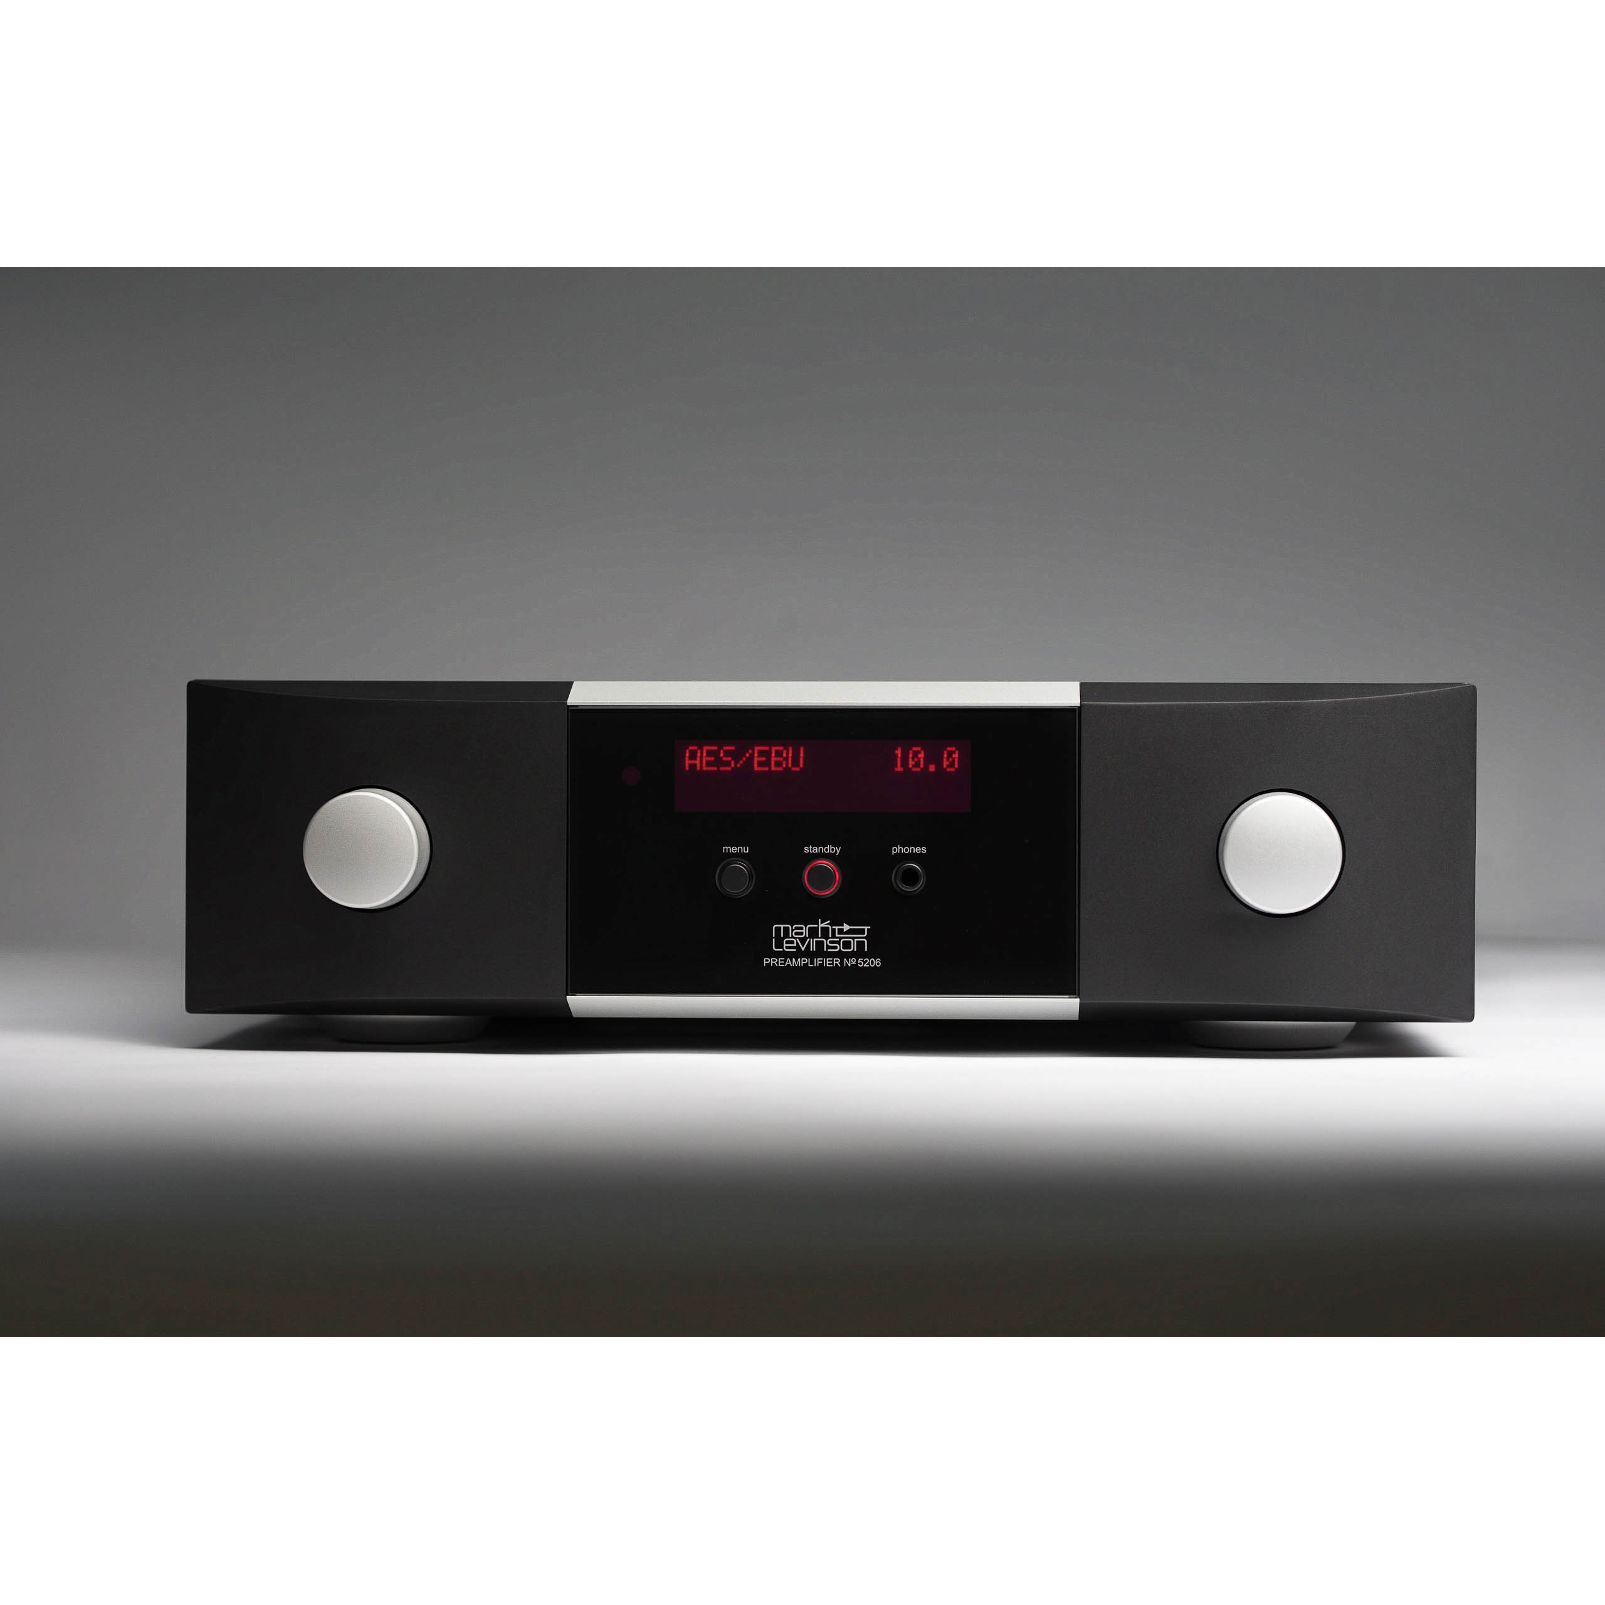 №5206 - Black - Mark Levinson № 5206 preamplifier with Pure Path fully discrete, direct-coupled, dual-monaural line-level class A preamp circuitry, MM/MC phono stage, and Main Drive headphone output. - Hero